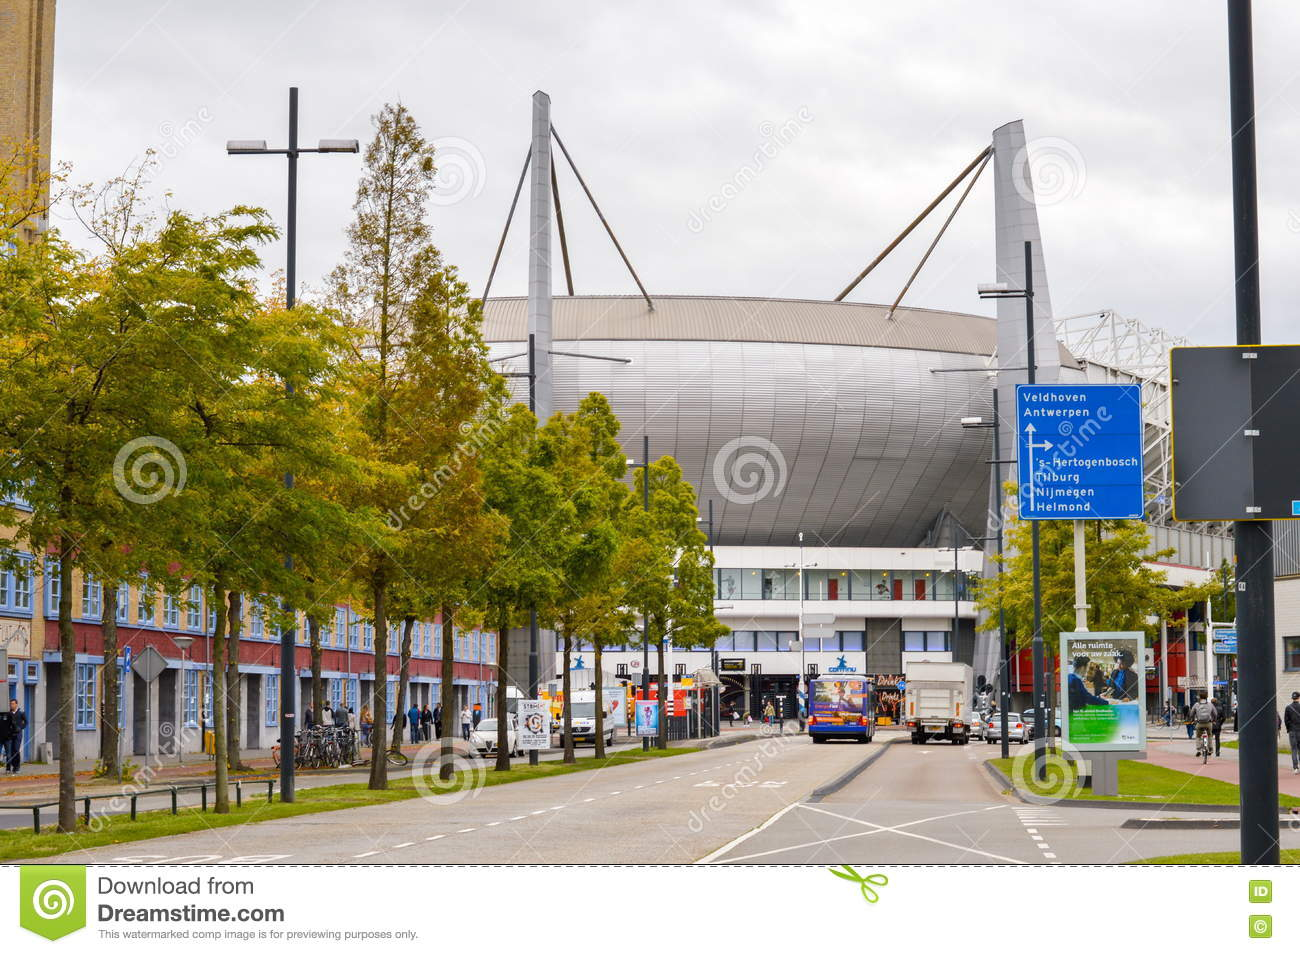 Eindhoven, the Netherlands - 15.09.2015: View at the Philips Sta